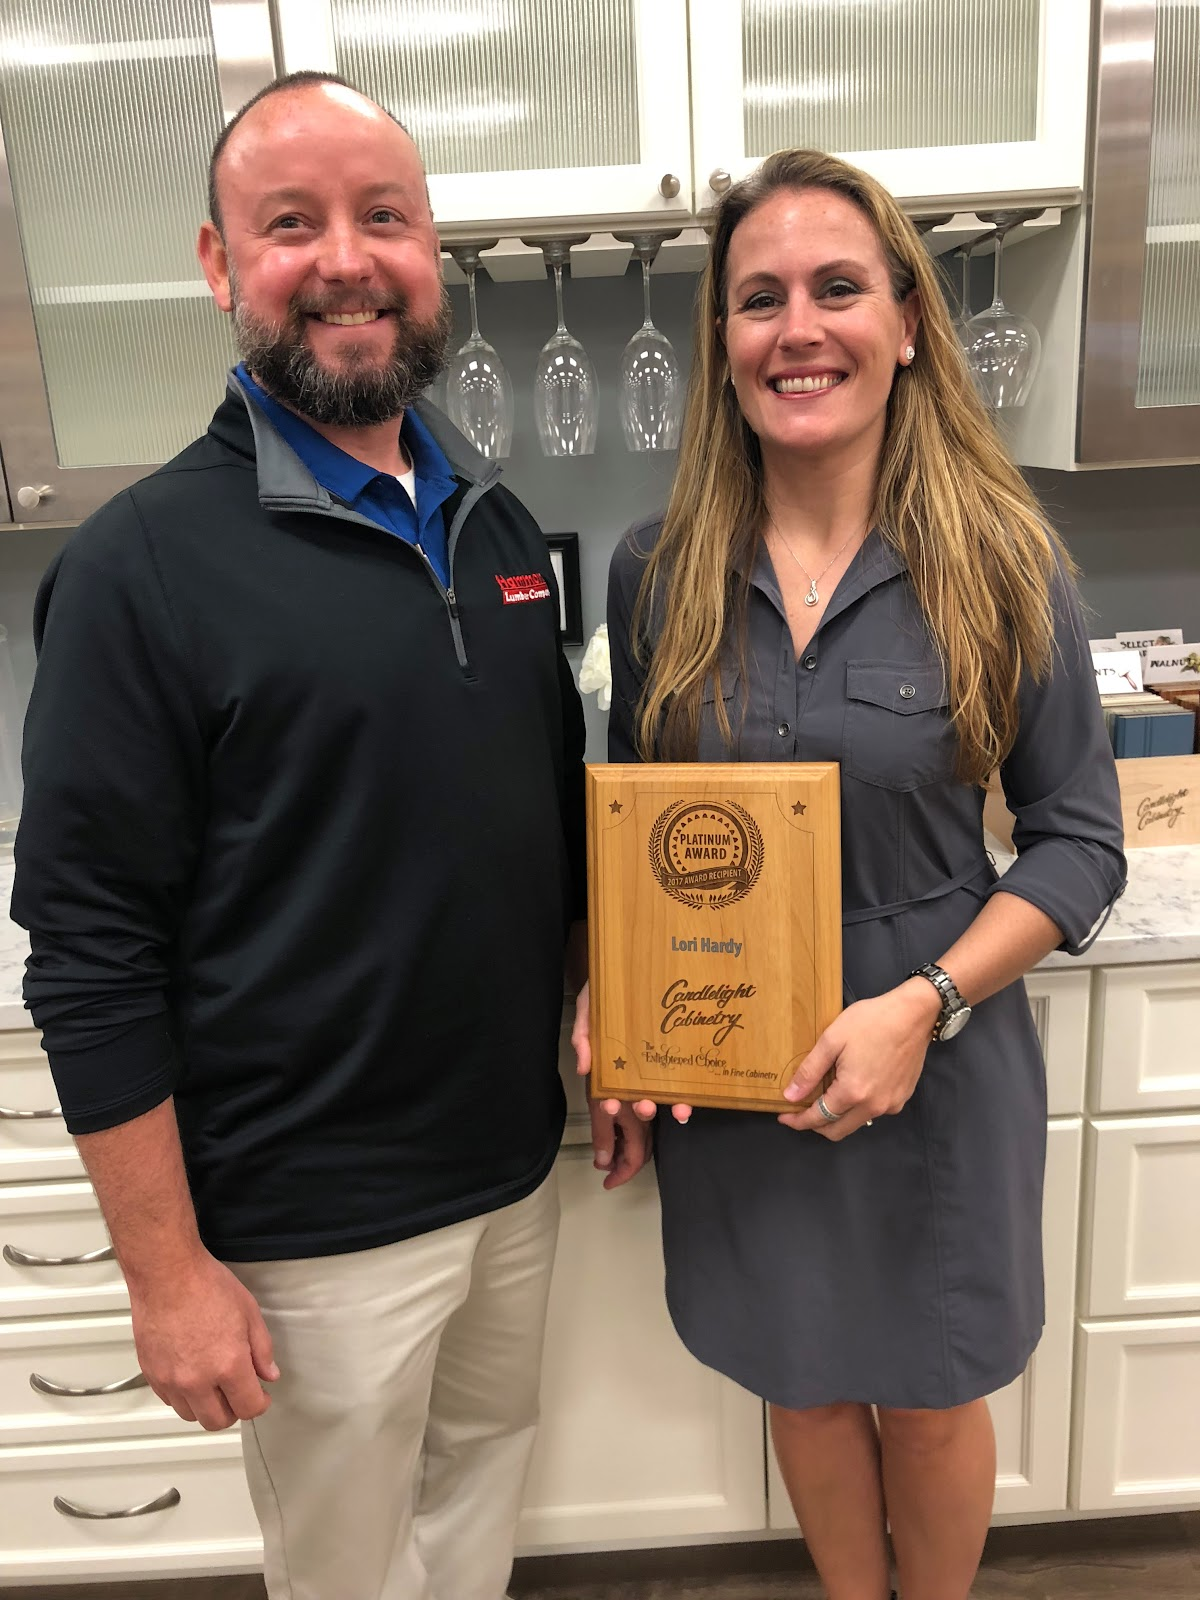 Lori Hardy & Steve Hardy with Loris platinum award from Candlelight Cabinetry